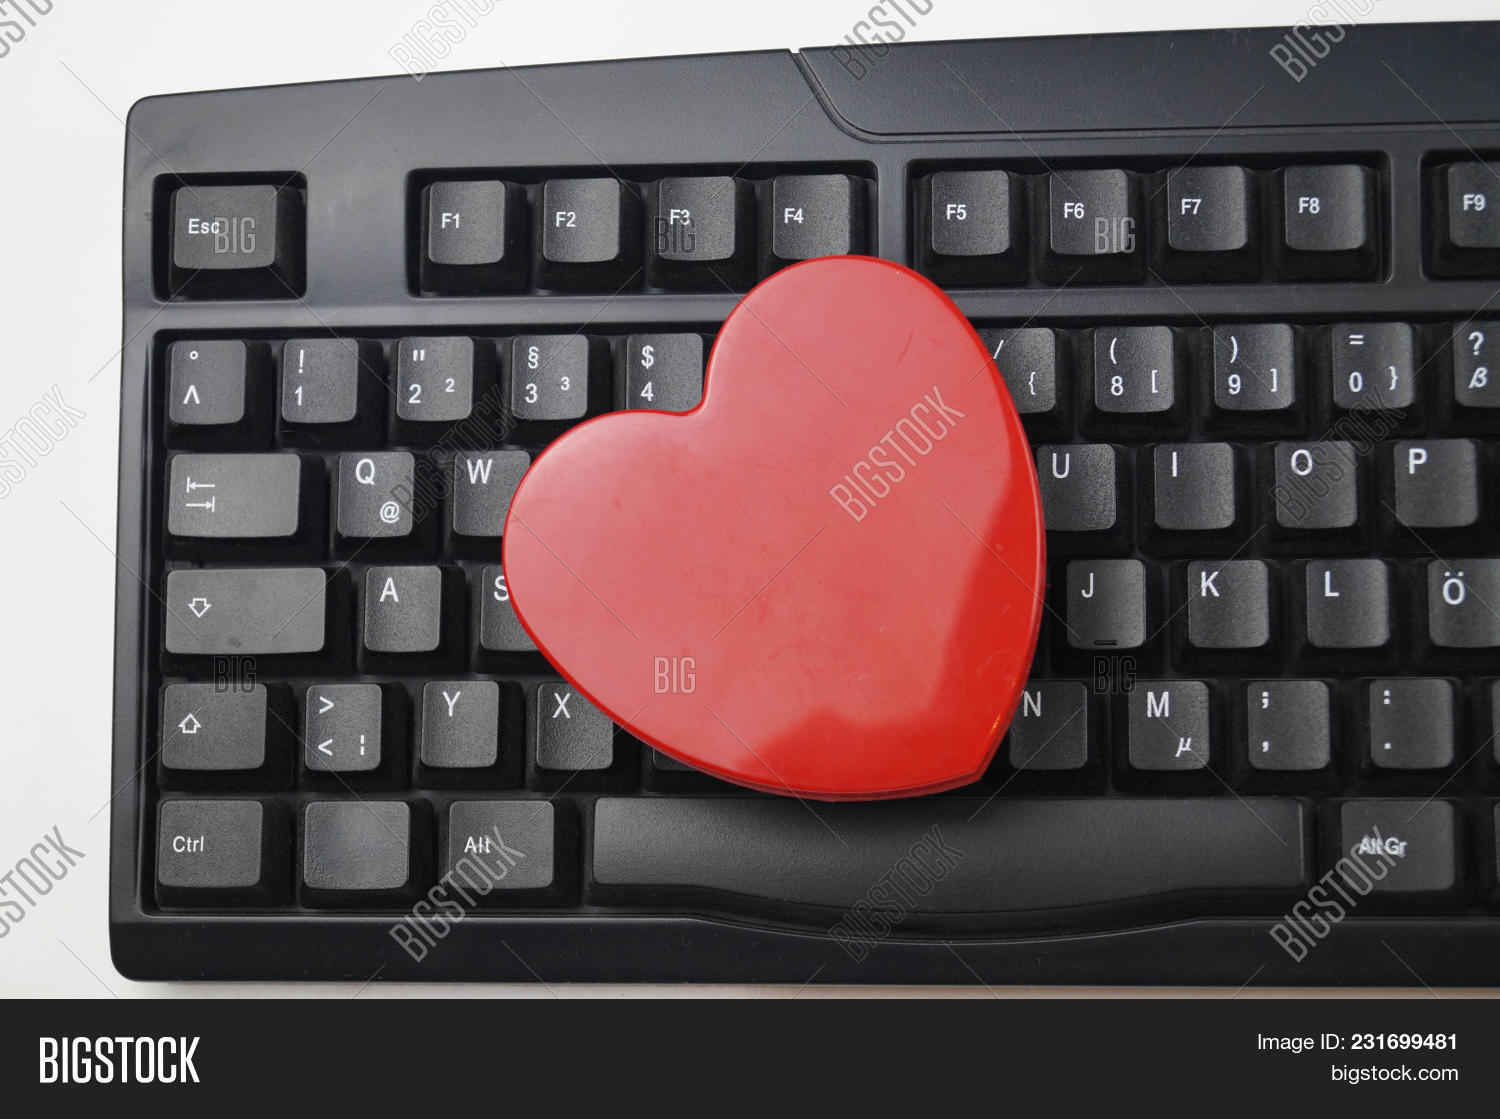 Ctrls online dating